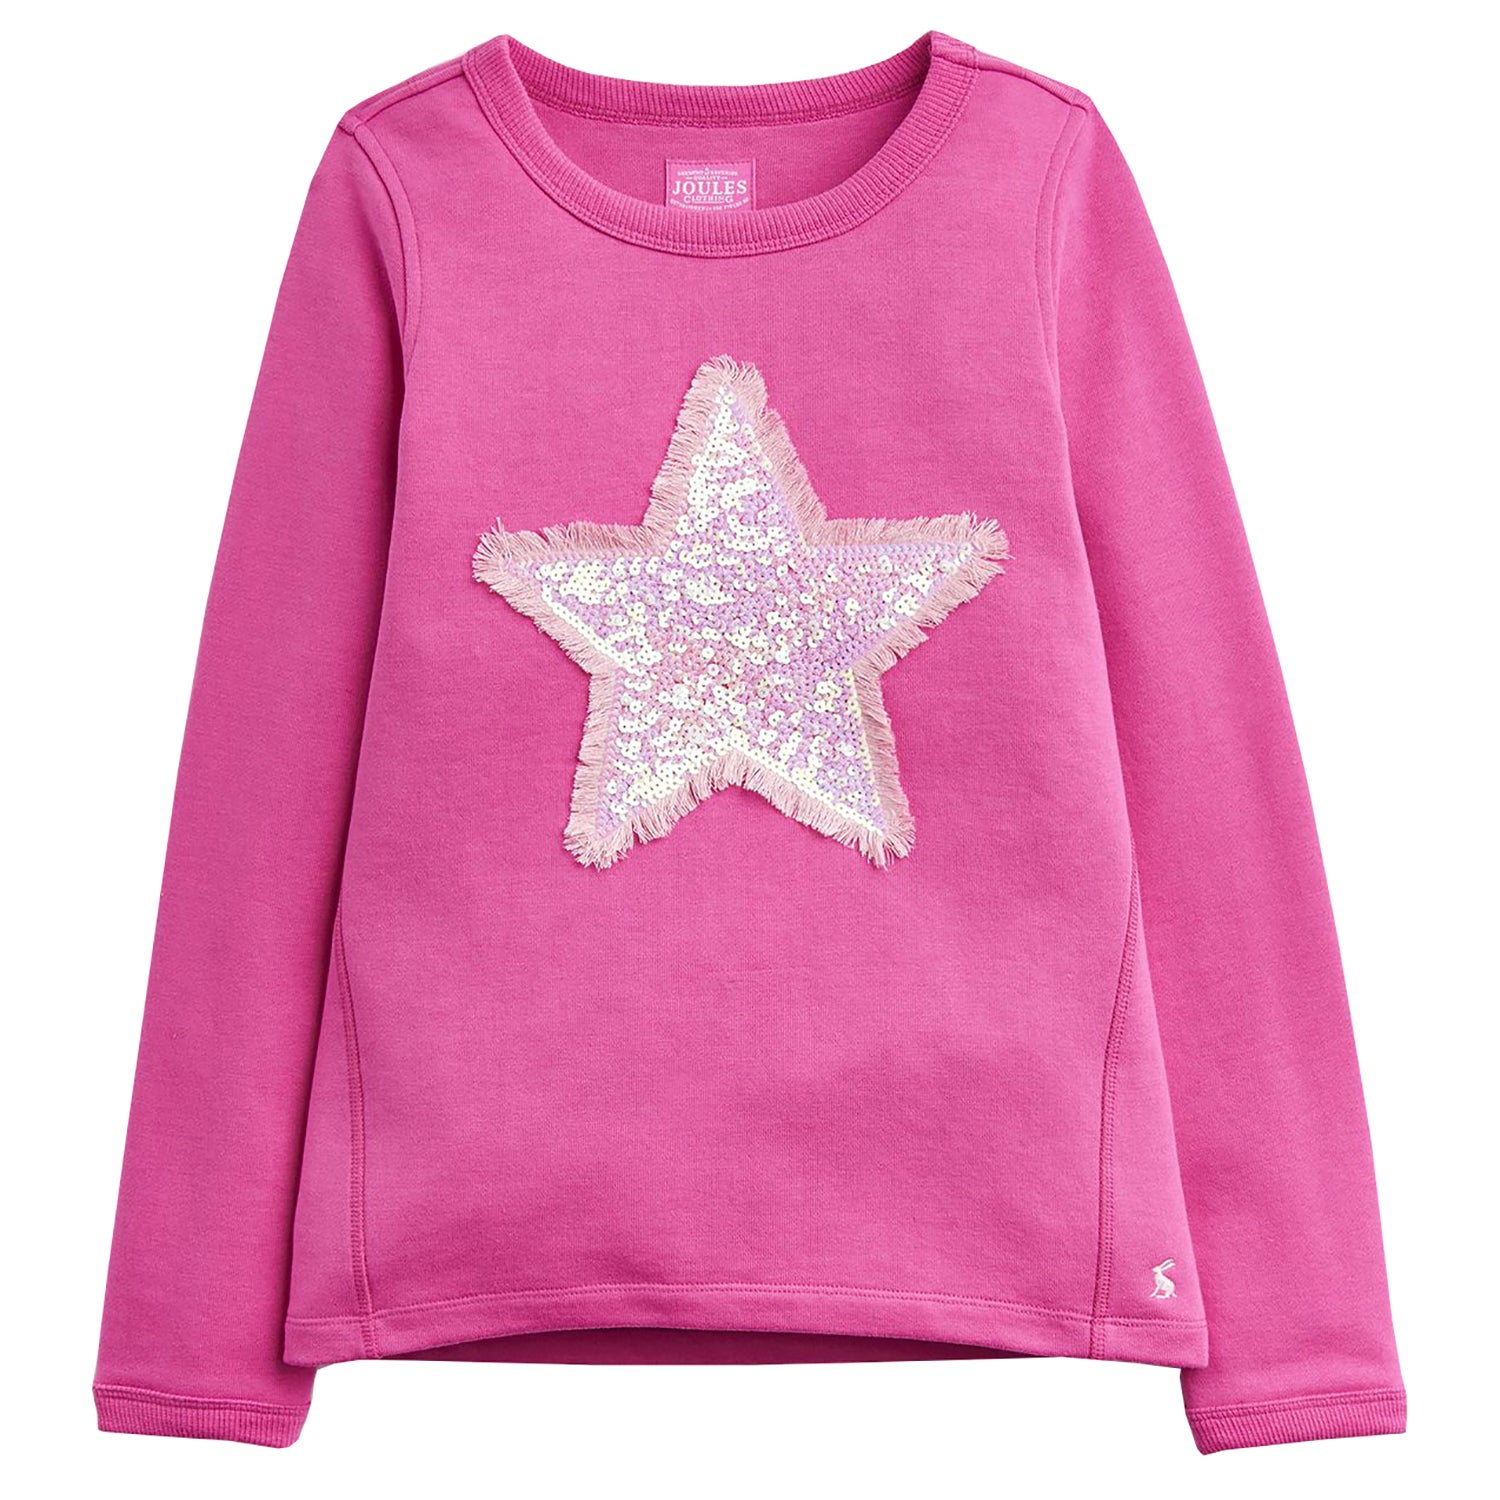 Joules Mart Graphic Print Sweater